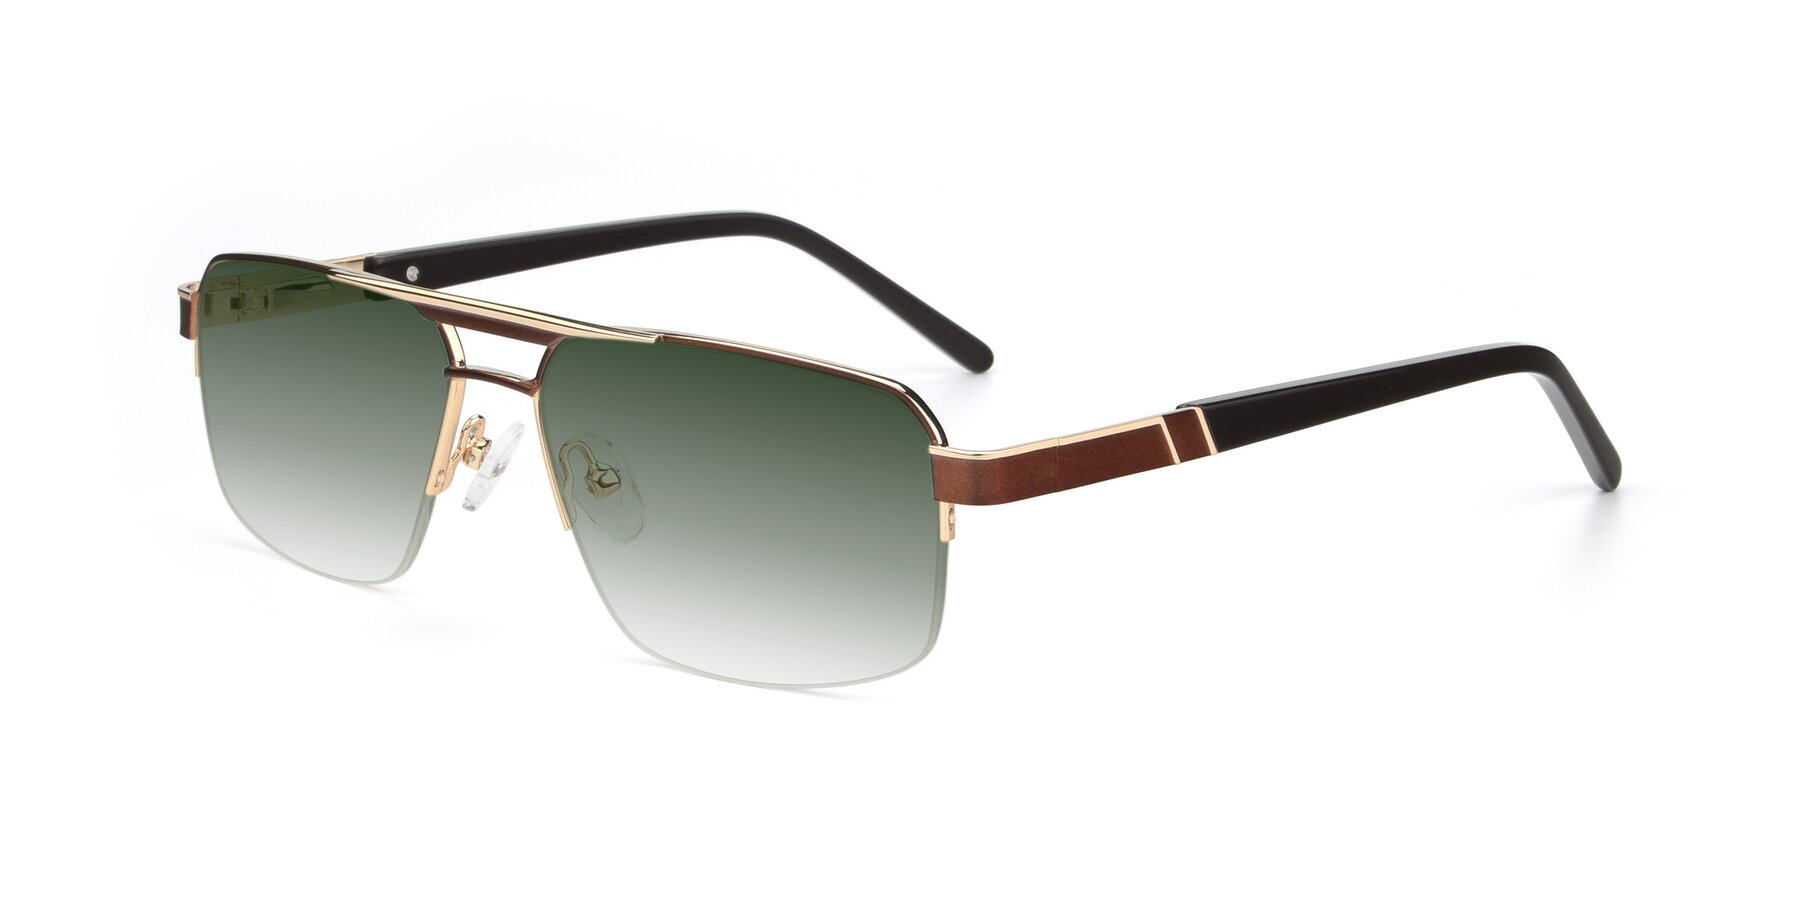 Angle of 19004 in Bronze-Gold with Green Gradient Lenses